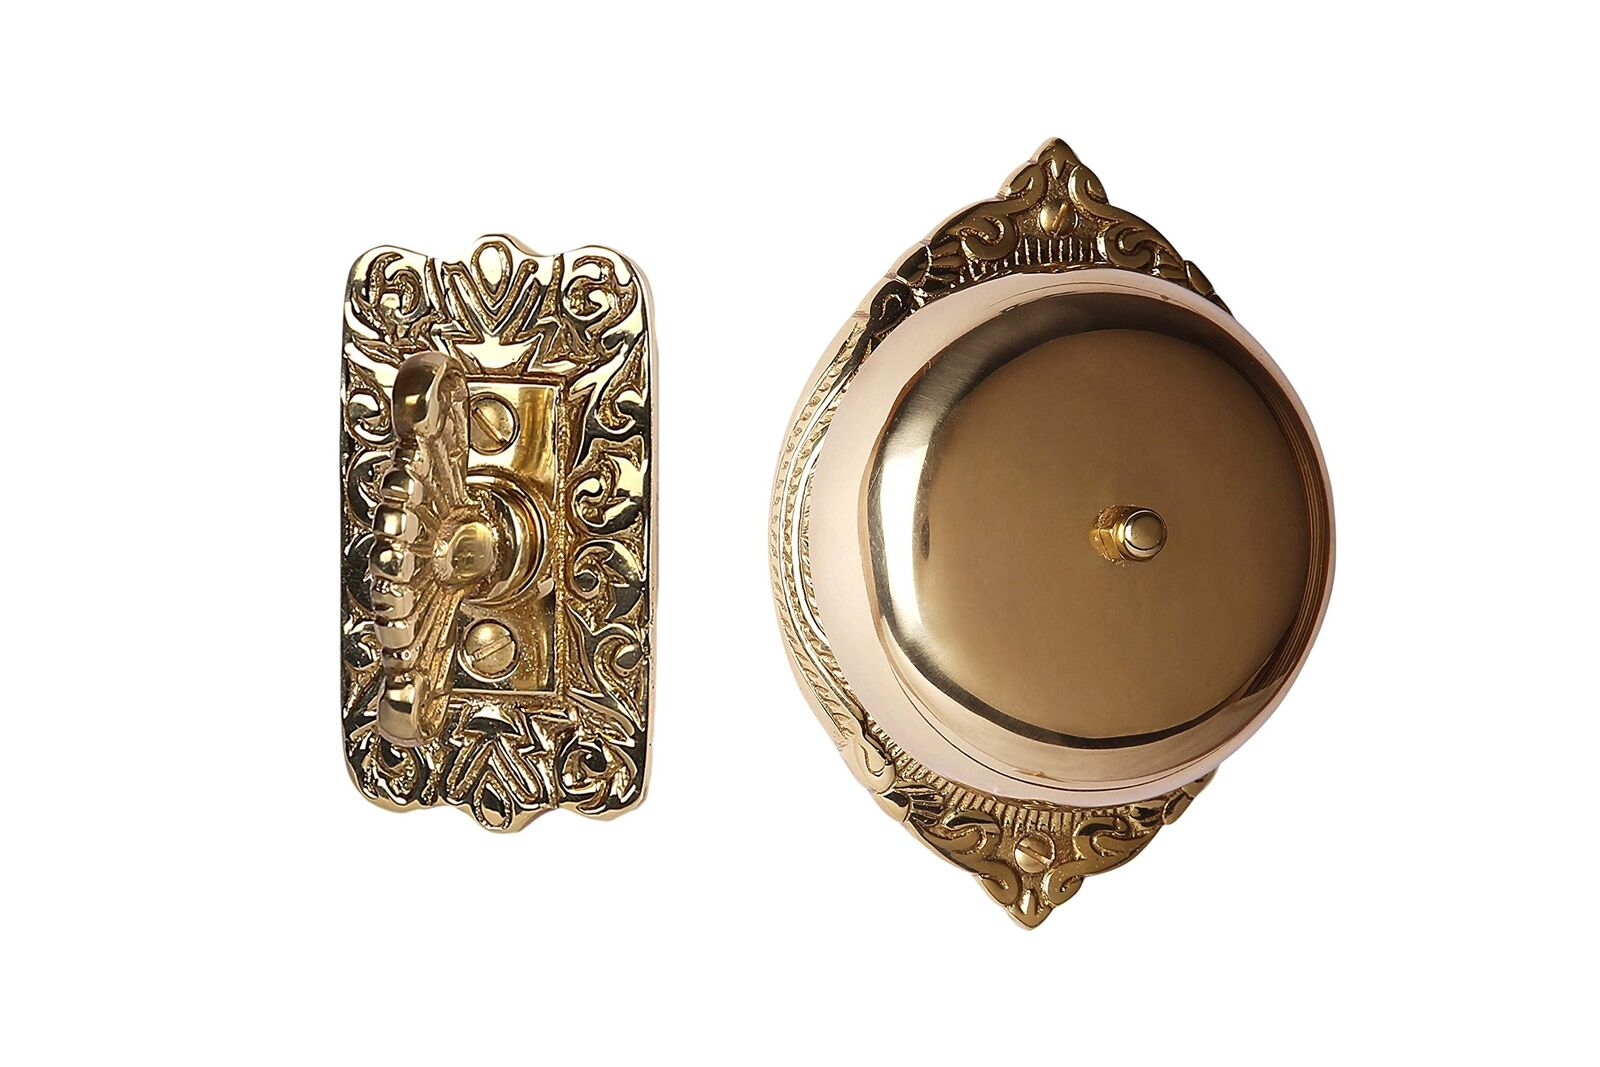 A29 Victorian Twist Hand Turn Doorbell, Handmade, Polished Lacquered Brass